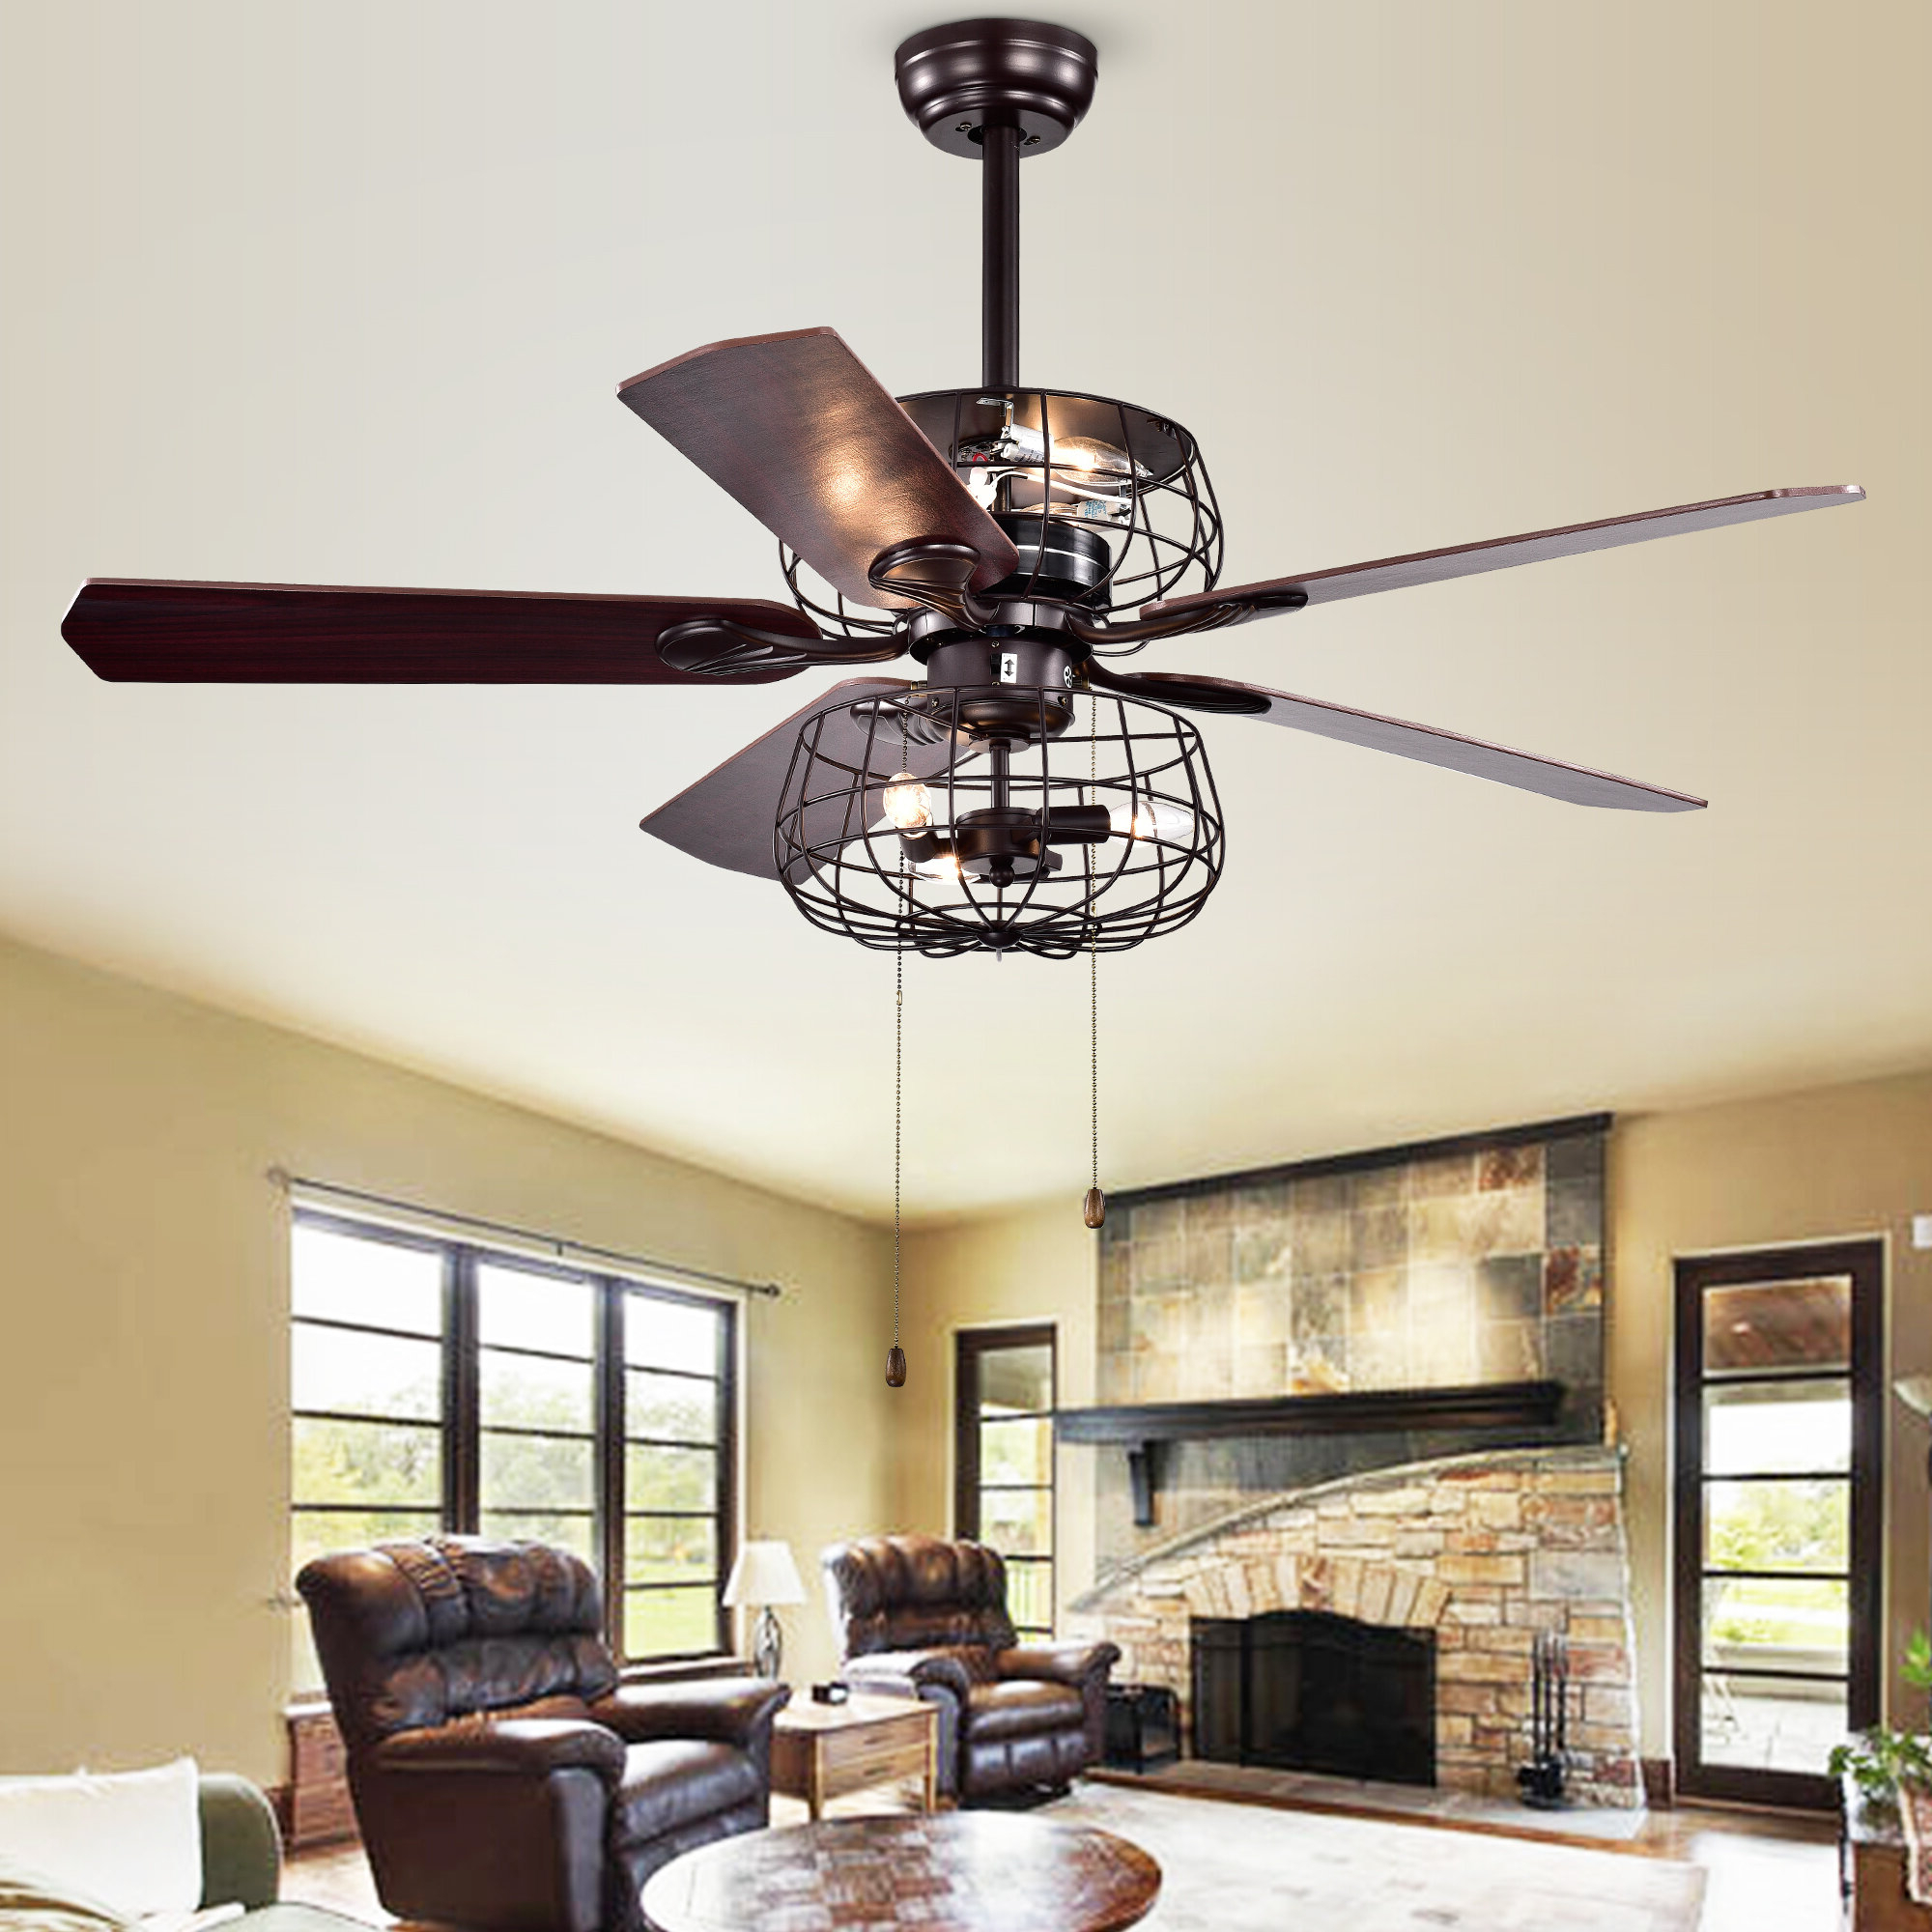 Widely Used Kyla 5 Blade Ceiling Fans In Kaiya 5 Blade Ceiling Fan, Light Kit Included (View 9 of 20)